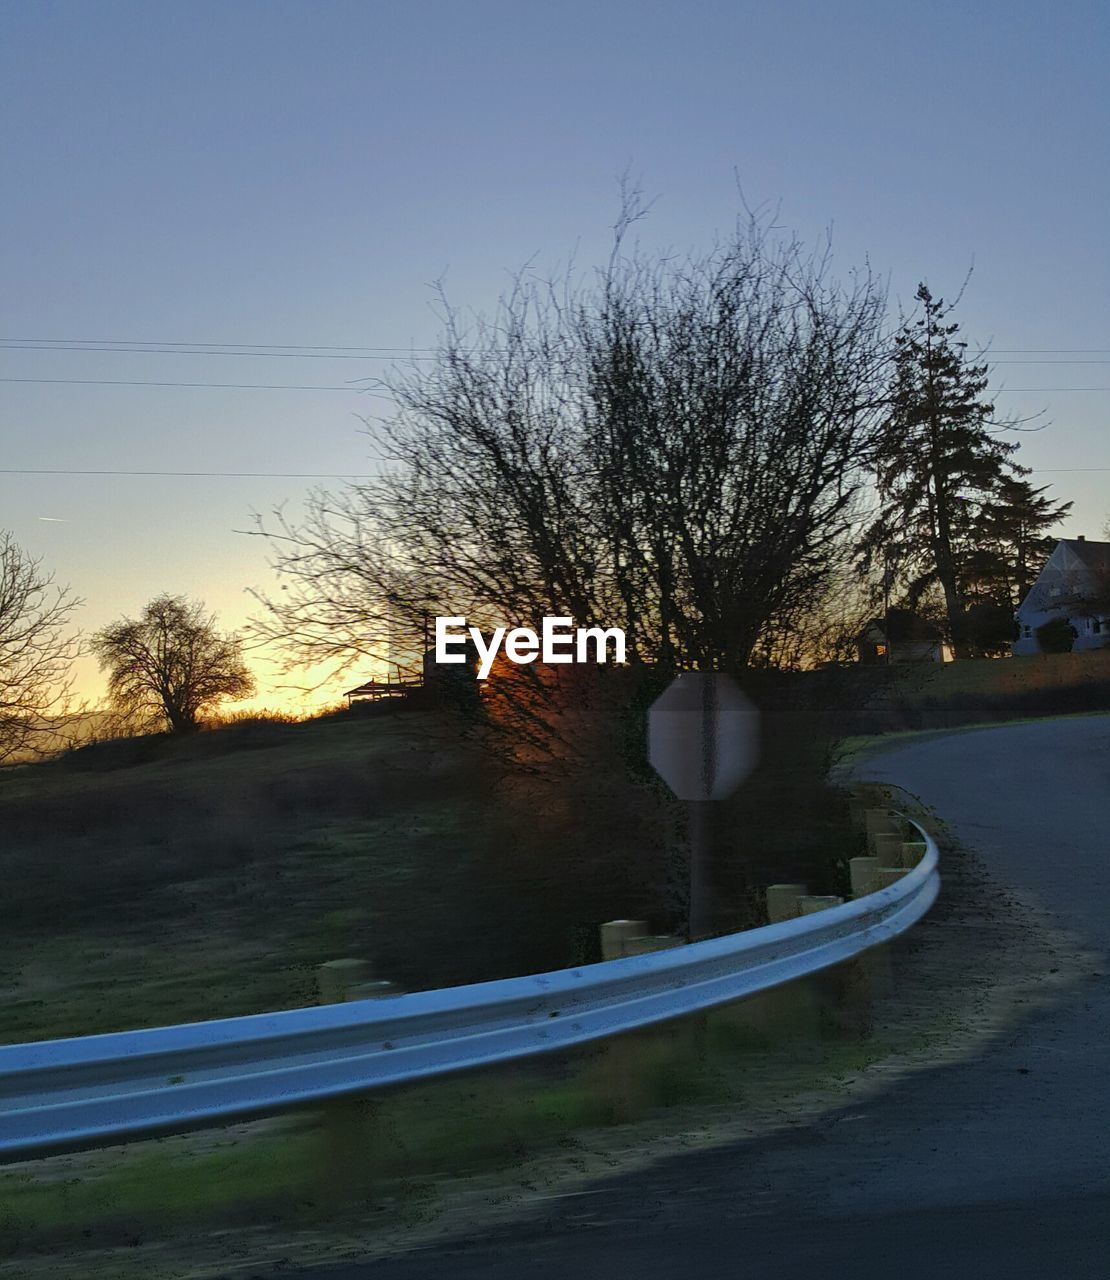 sky, tree, plant, road, nature, transportation, no people, bare tree, clear sky, sunset, tranquility, mode of transportation, dusk, beauty in nature, outdoors, scenics - nature, the way forward, tranquil scene, barrier, architecture